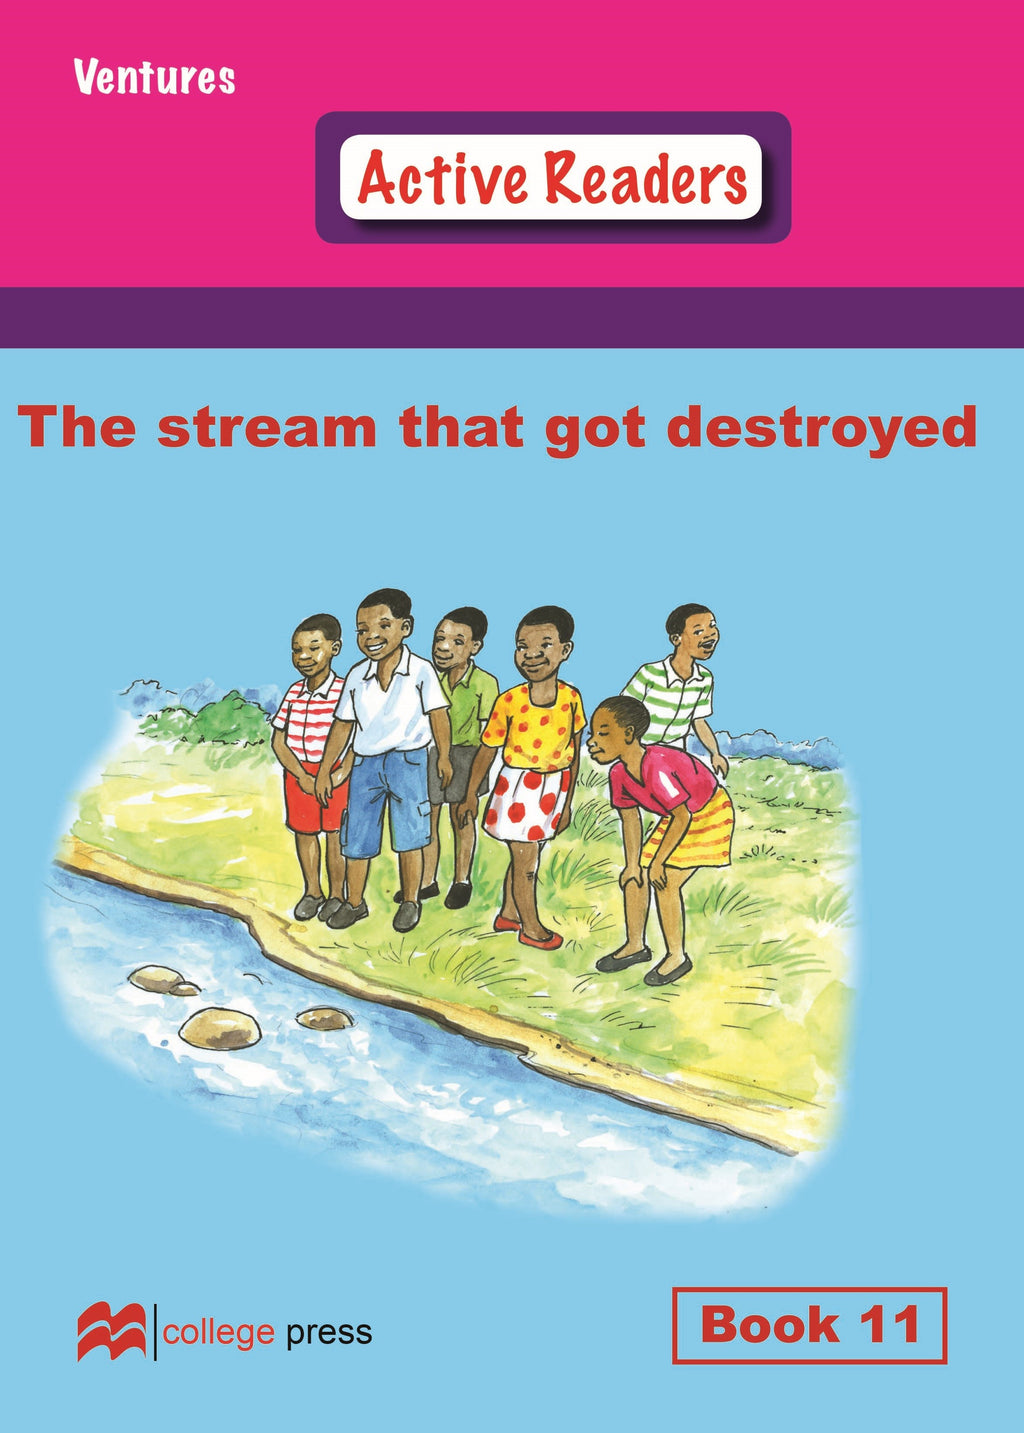 Ventures active readers (Controlled English Reading Scheme) The stream that got destroyed Book 11